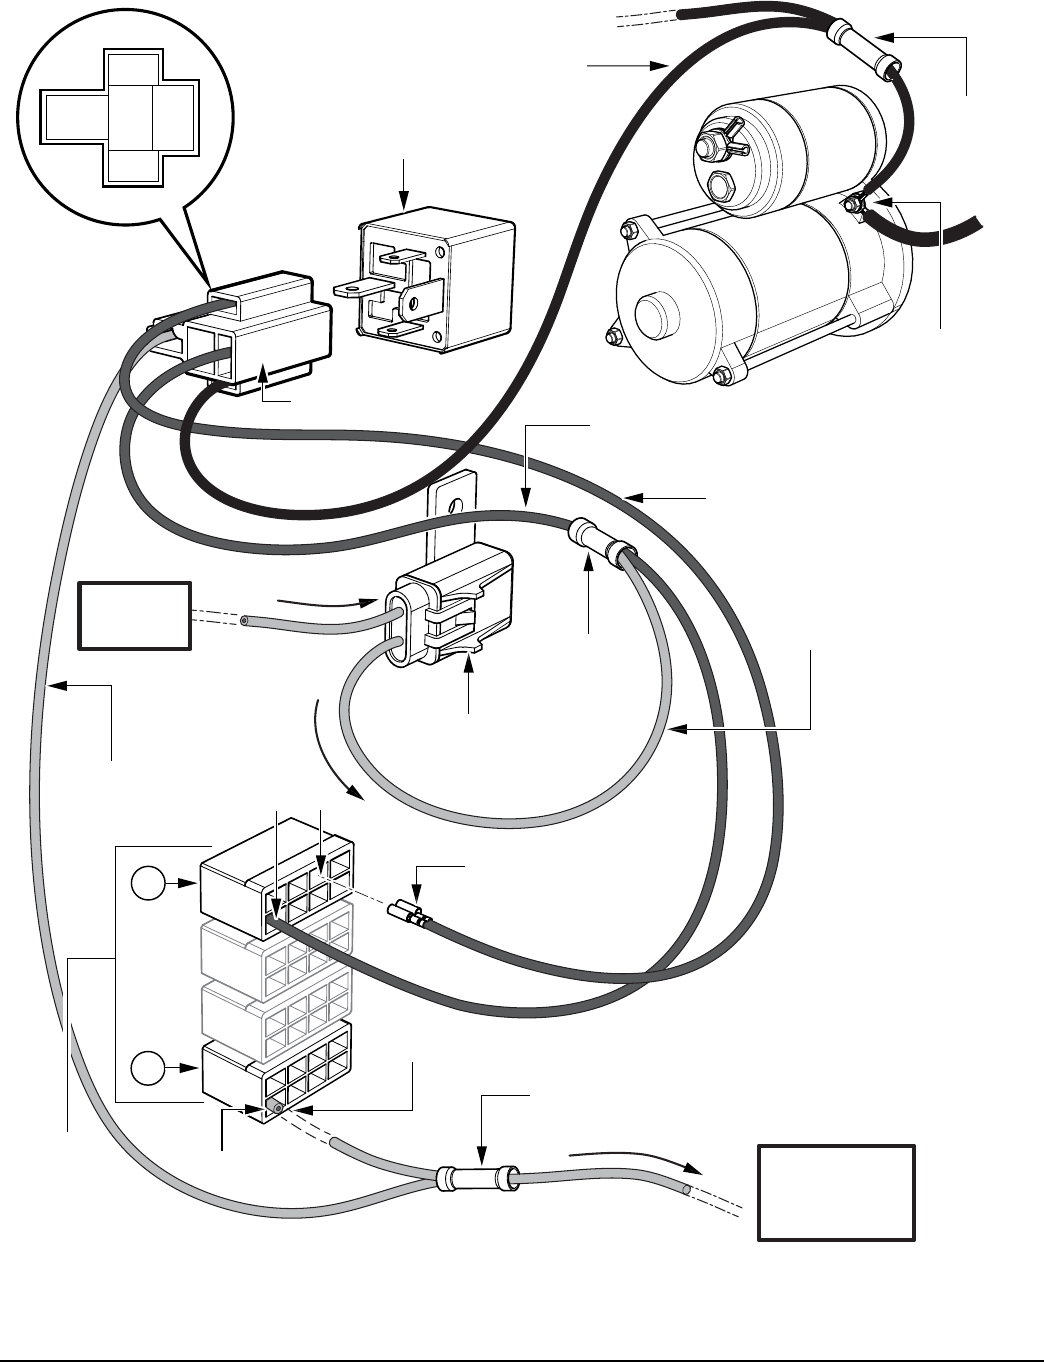 1991 FoMoCo EngineEmissions Diagnosis Manual Original P13377 besides 93 Fuel Pump Module Connector moreover 89 F150  puter Location together with 2003 Mazda Tribute Serpentine Belt Diagram furthermore 92 Chevy Corsica Wiring Diagram. on ford festiva club wiring diagram